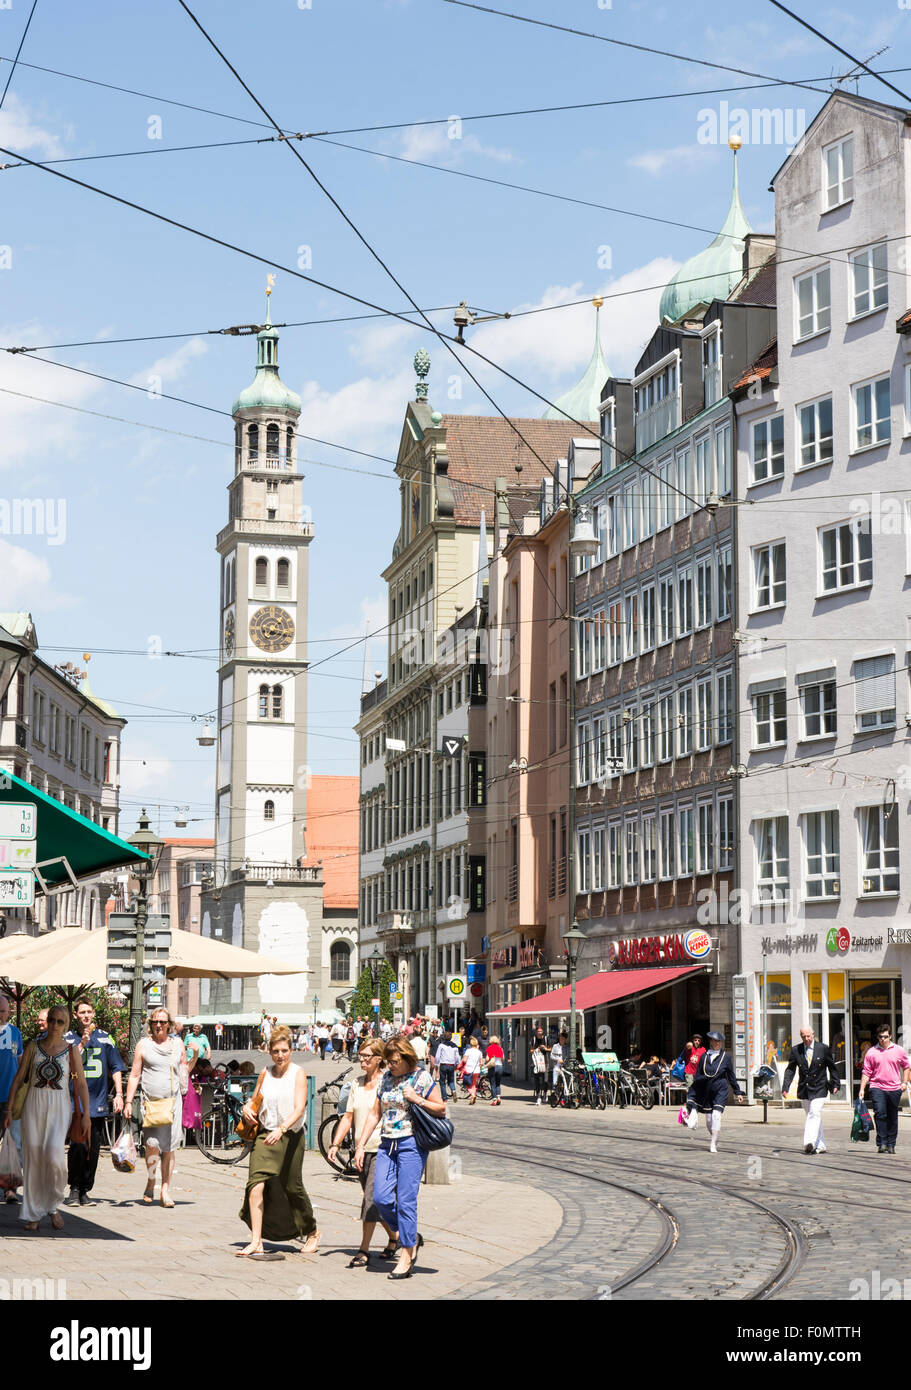 AUGSBURG, GERMANY - JULY 25: Tourists in the city of Augsburg, Germany on July 25, 2015.  It is the 2nd oldest town - Stock Image